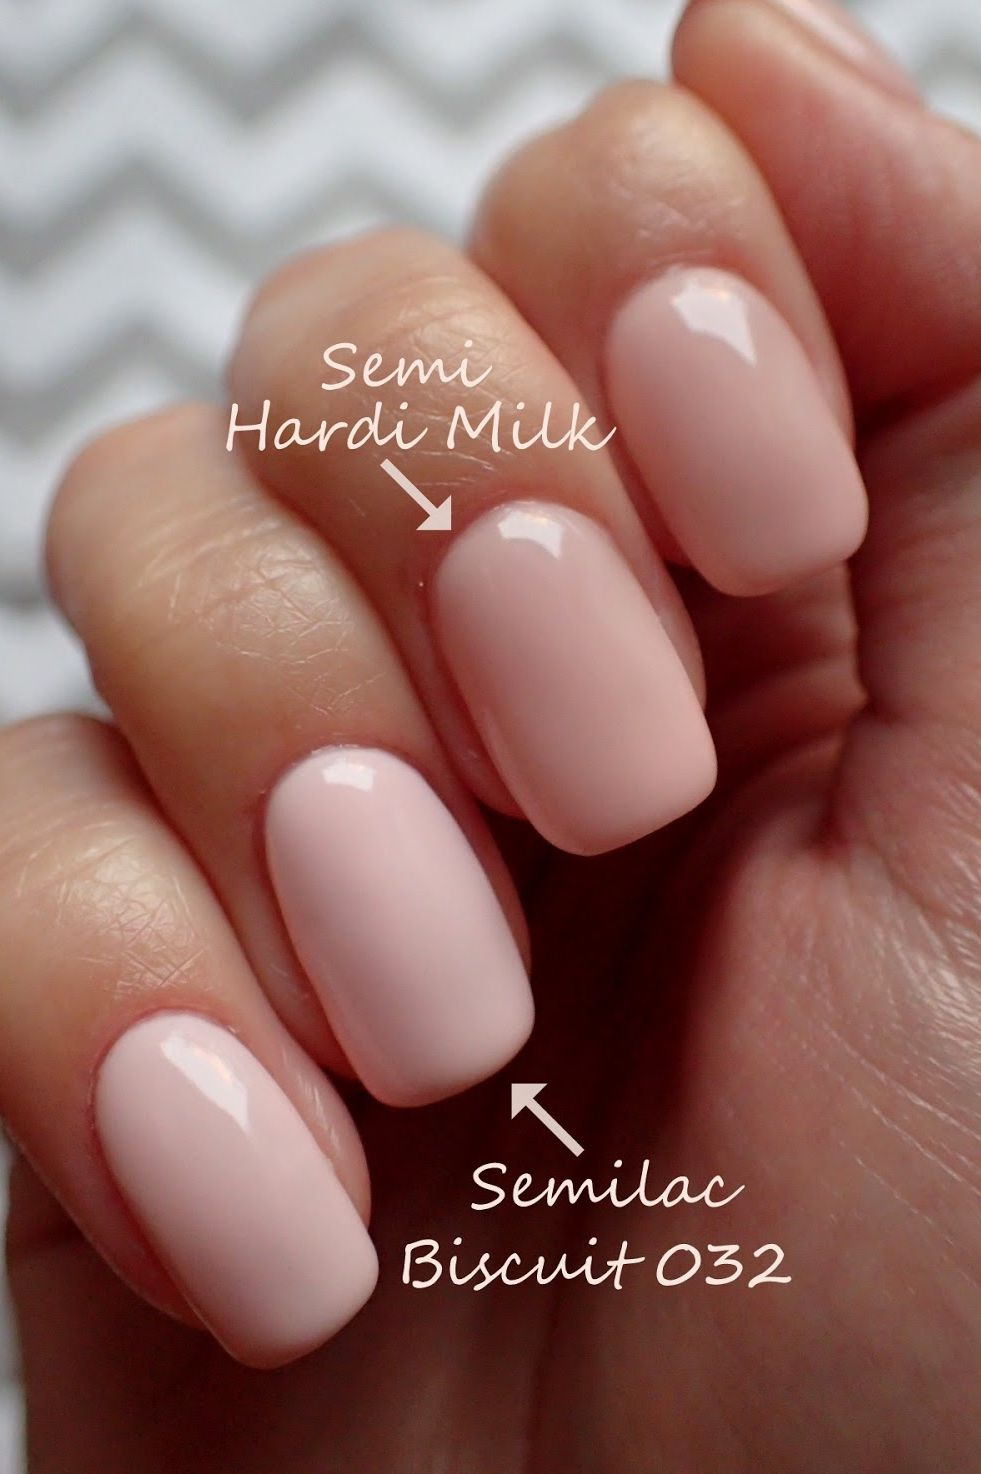 Semilac 032 Biscuit Lakier Hybrydowy Hybryda Nail Colors